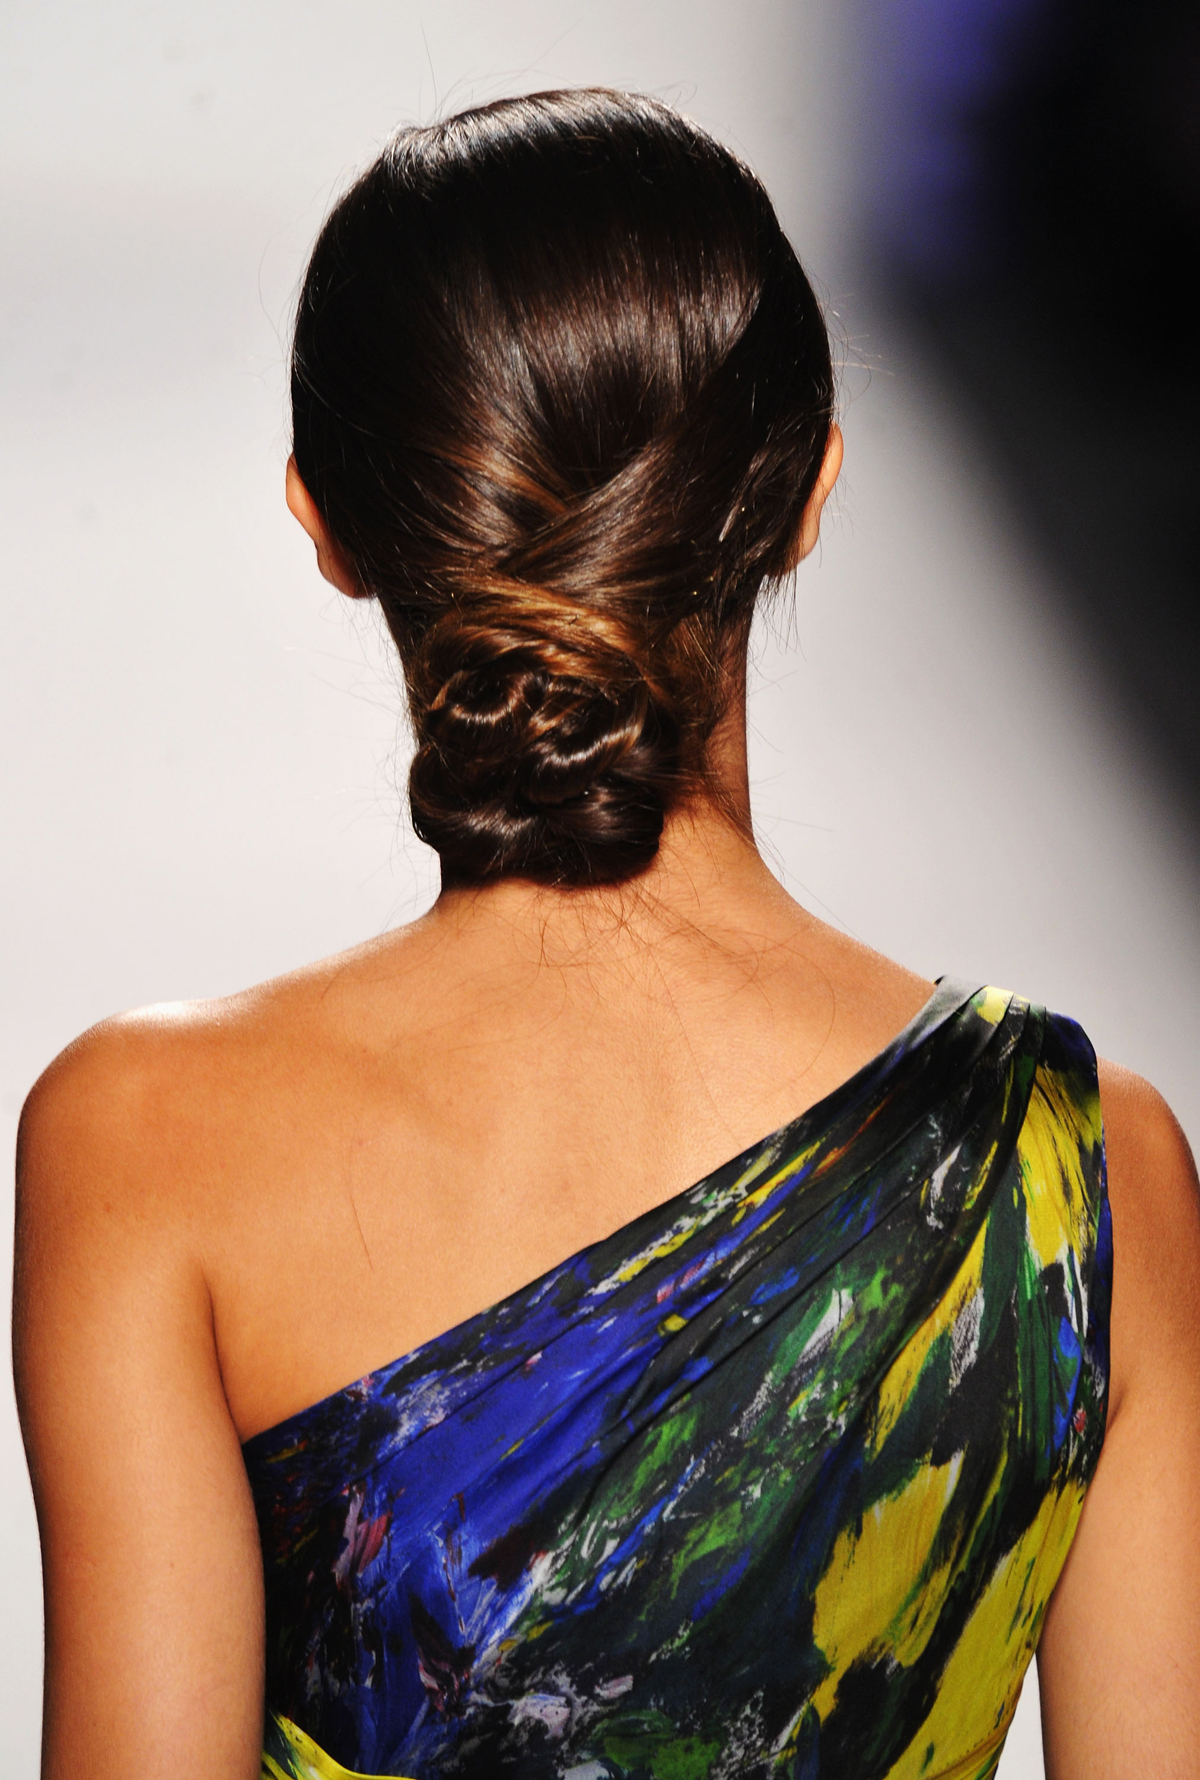 The At-Home Treatment That'll Make Your Hair So Much Shinier